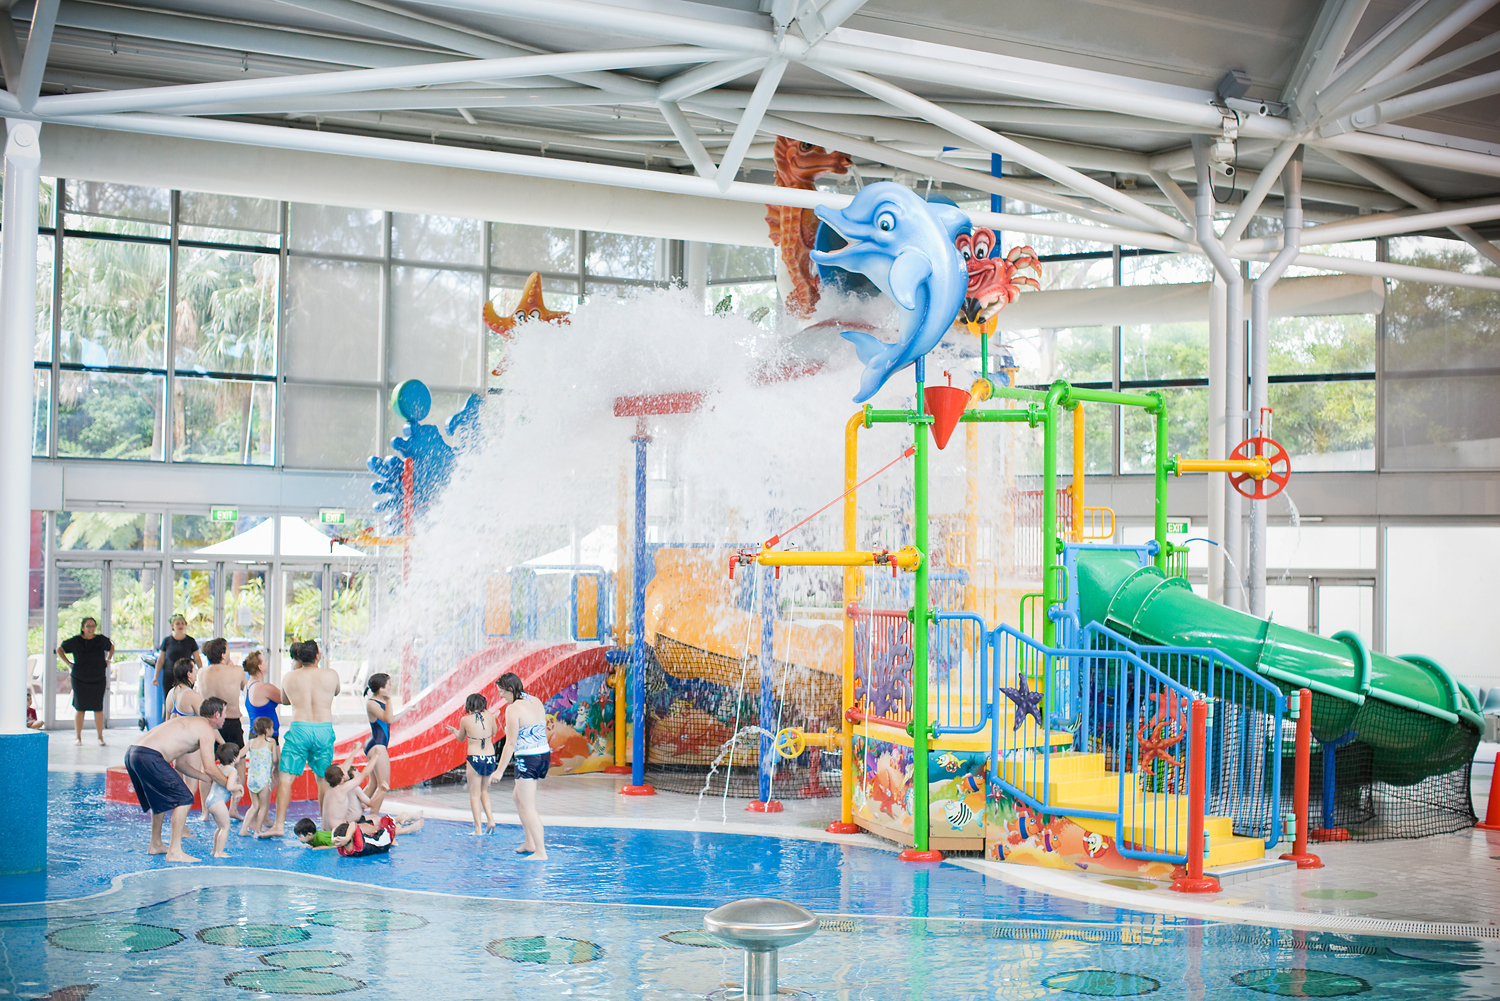 A large water slide indoors with families playing in the water